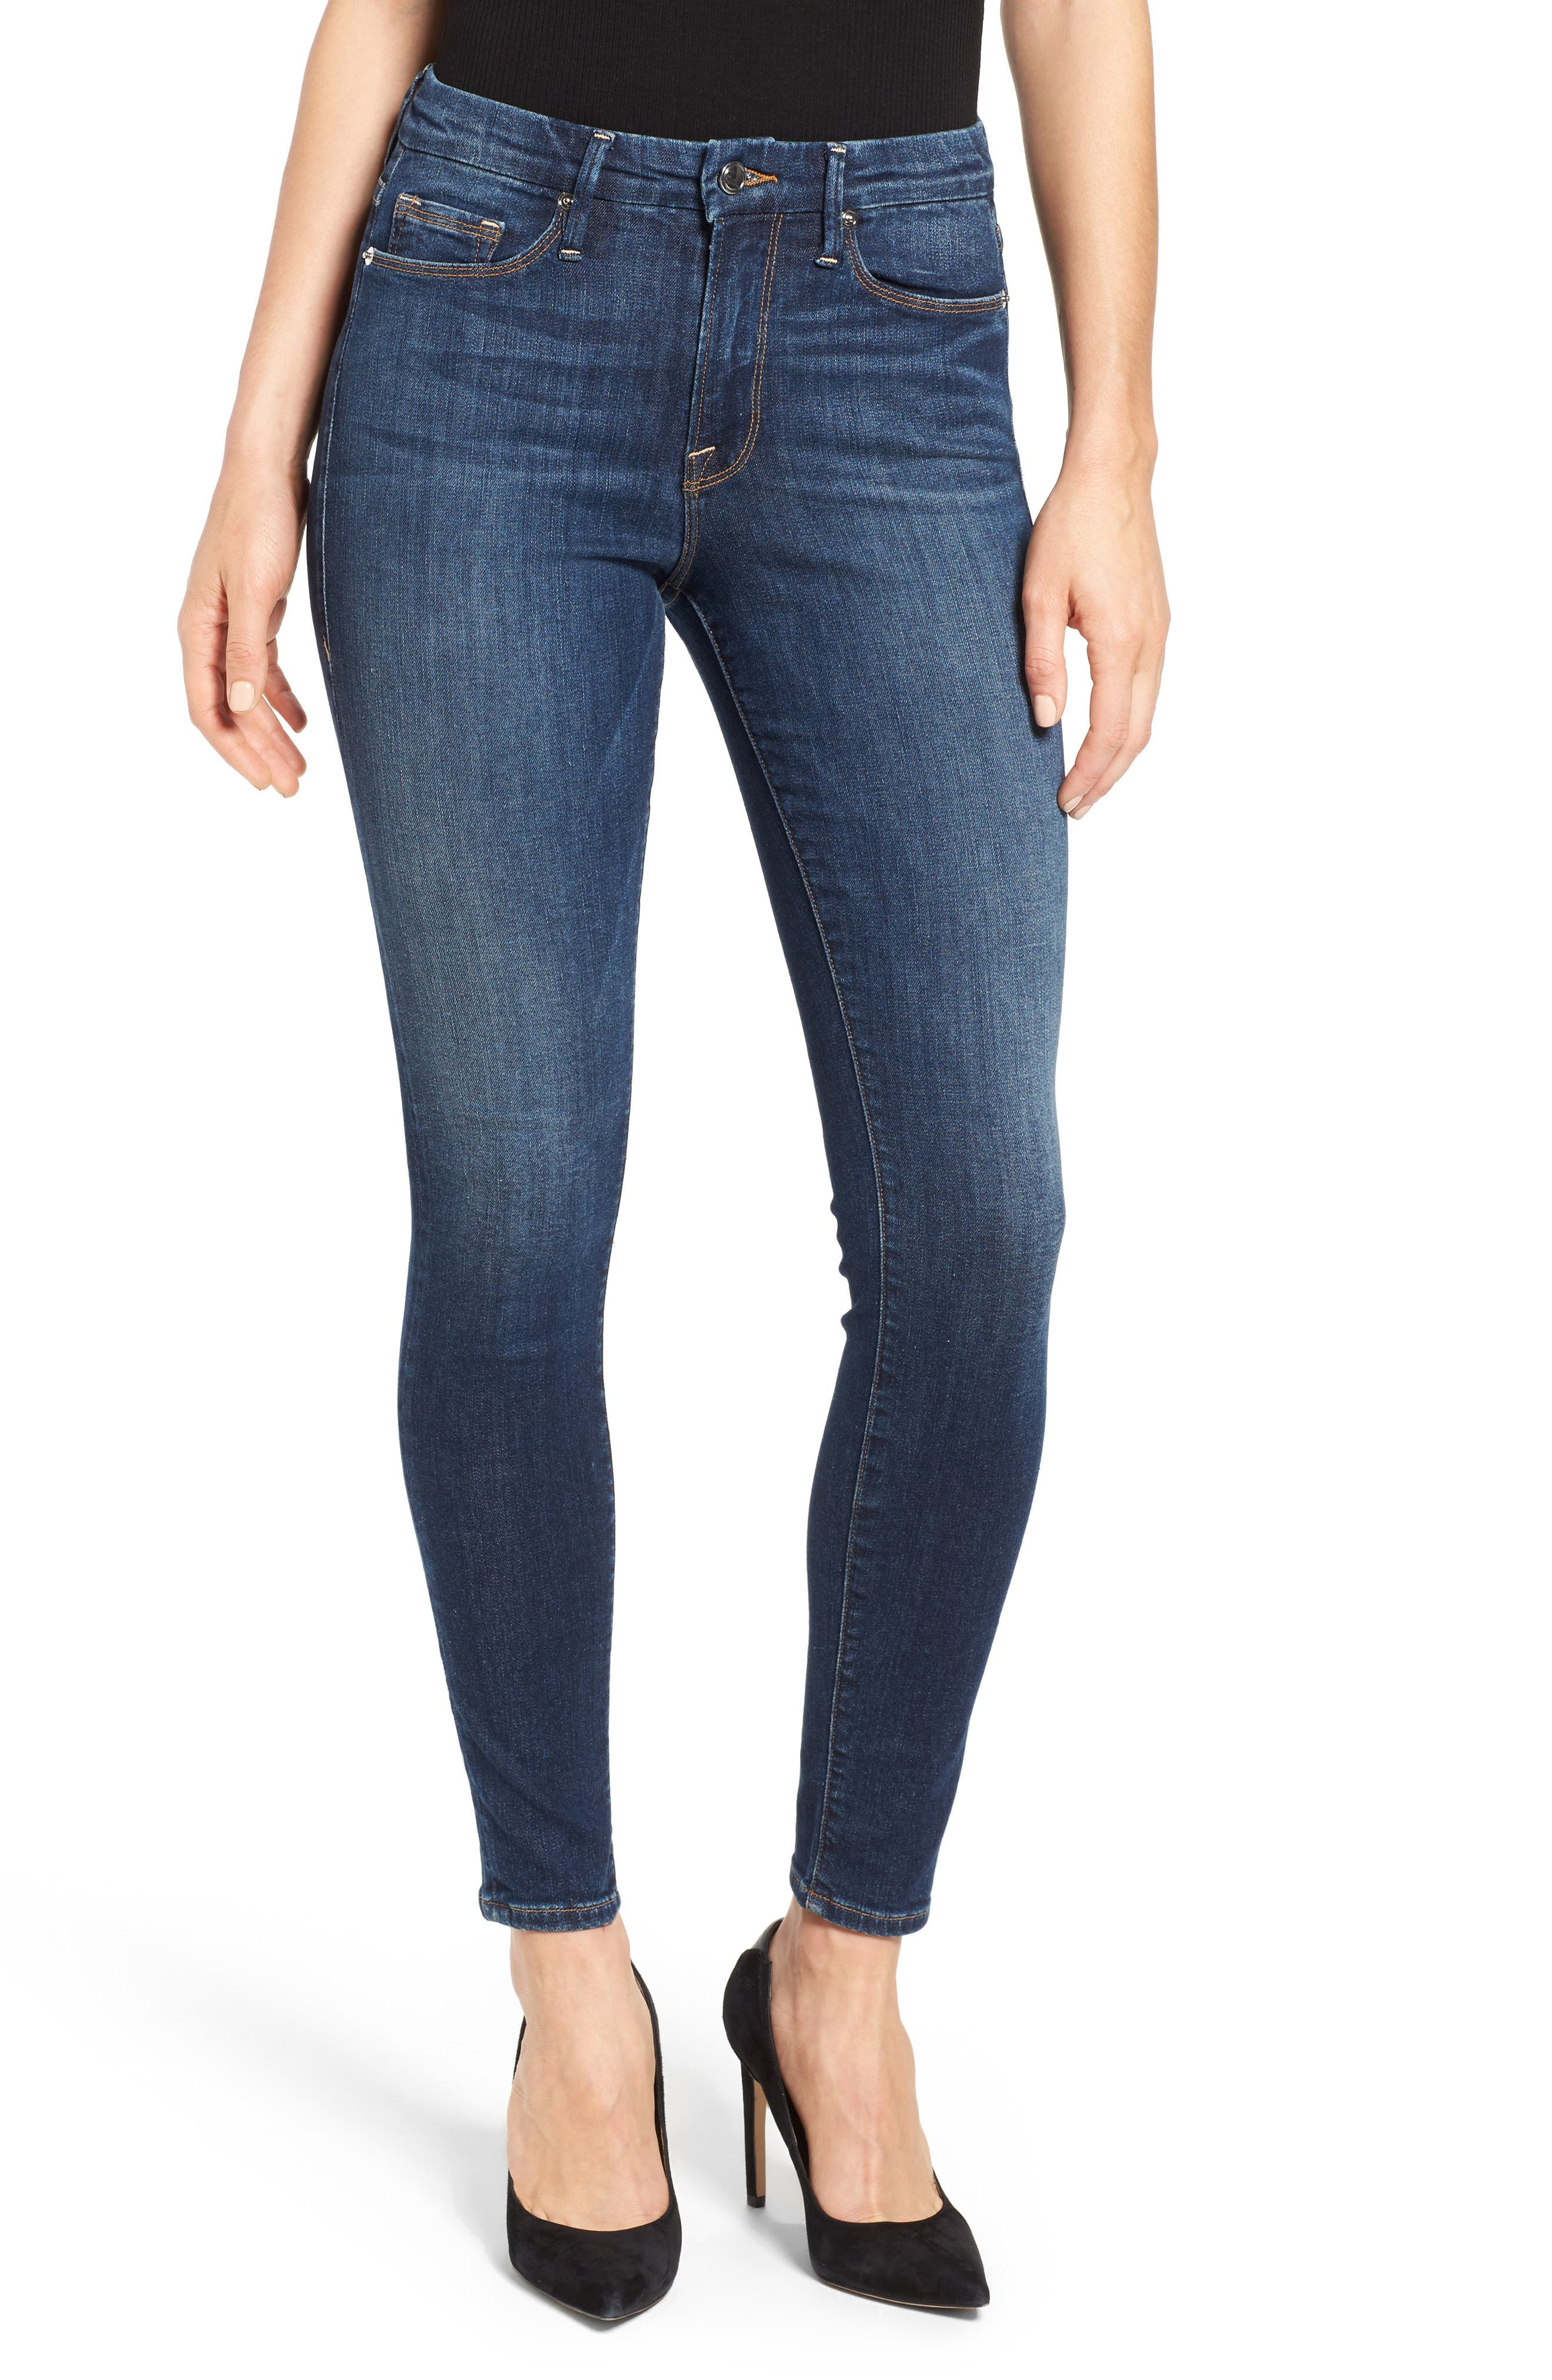 GOOD AMERICAN, Good Legs High Rise Skinny Jeans, Main thumbnail 1, color, BLUE 004